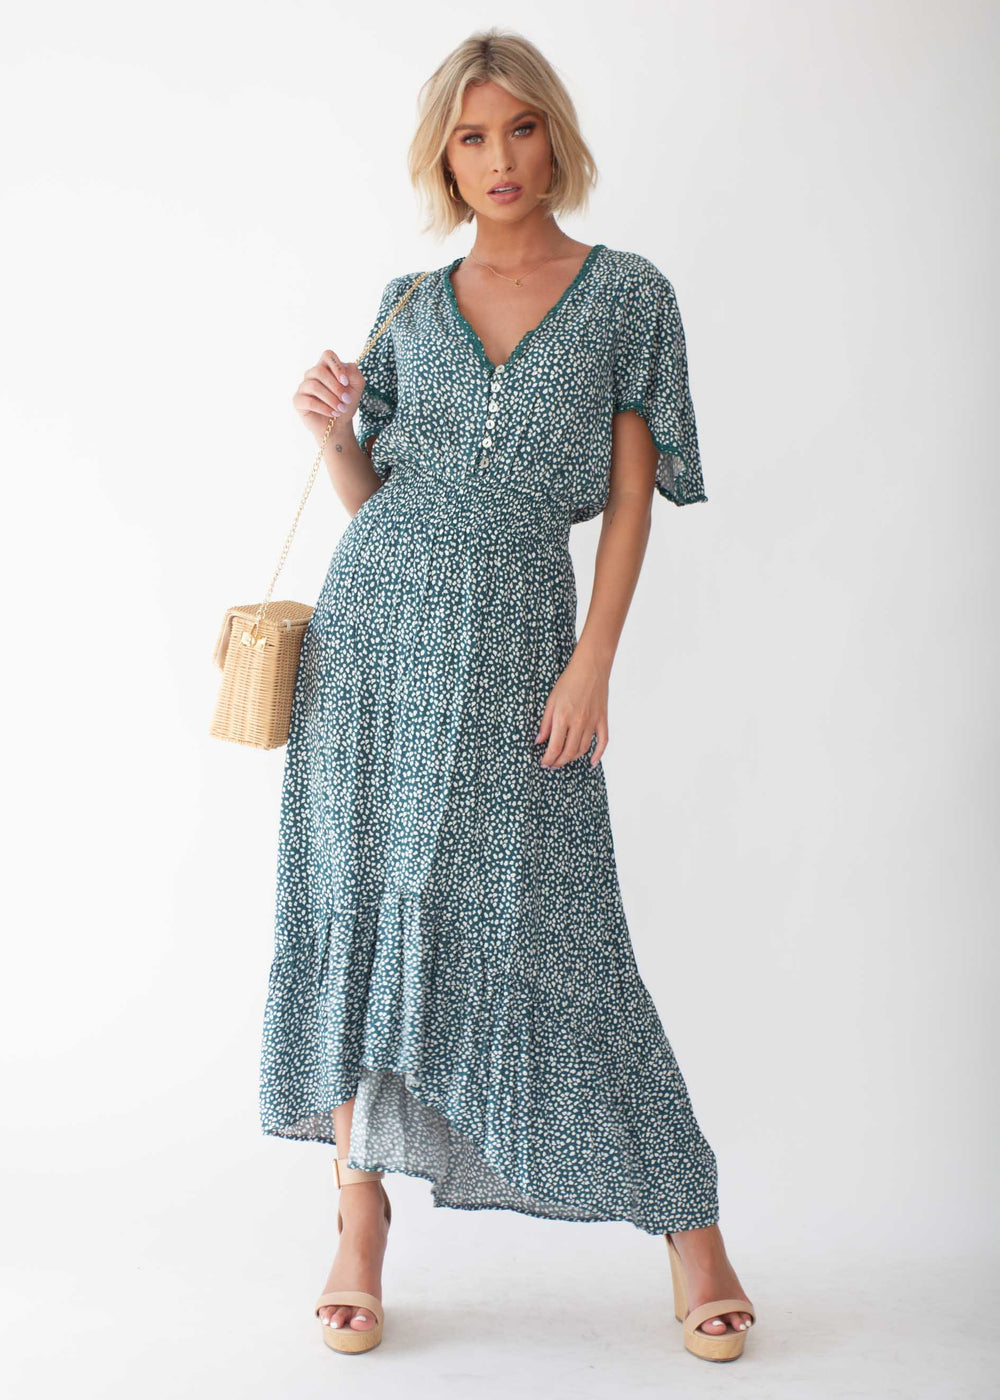 California Valley Midi Dress - Emerald